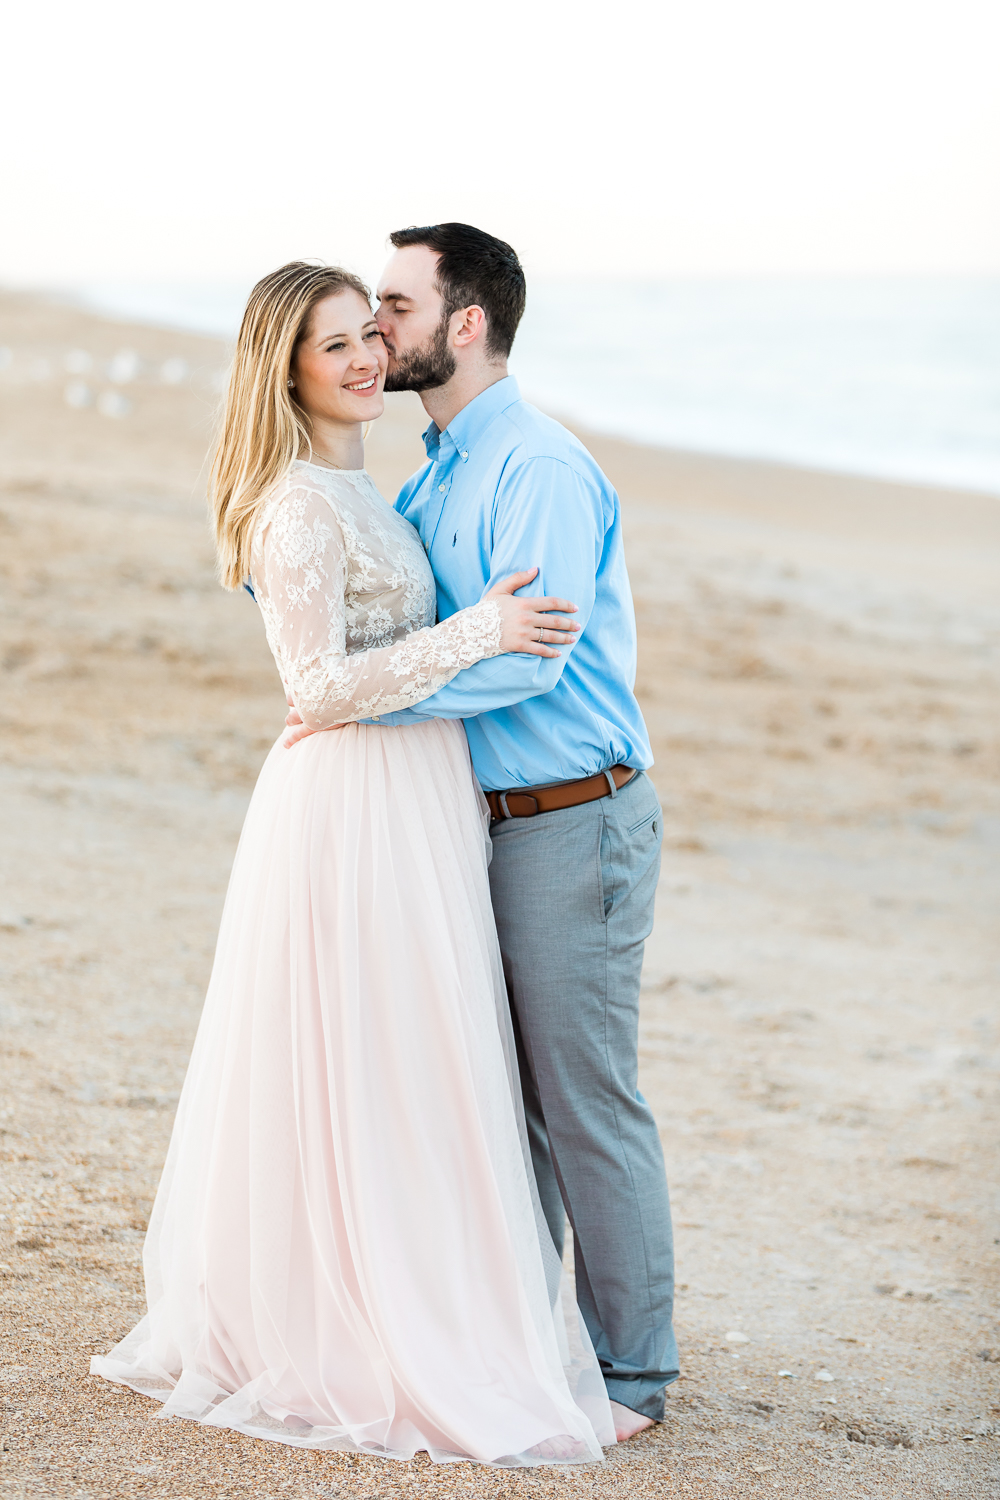 Engagement pictures at the beach